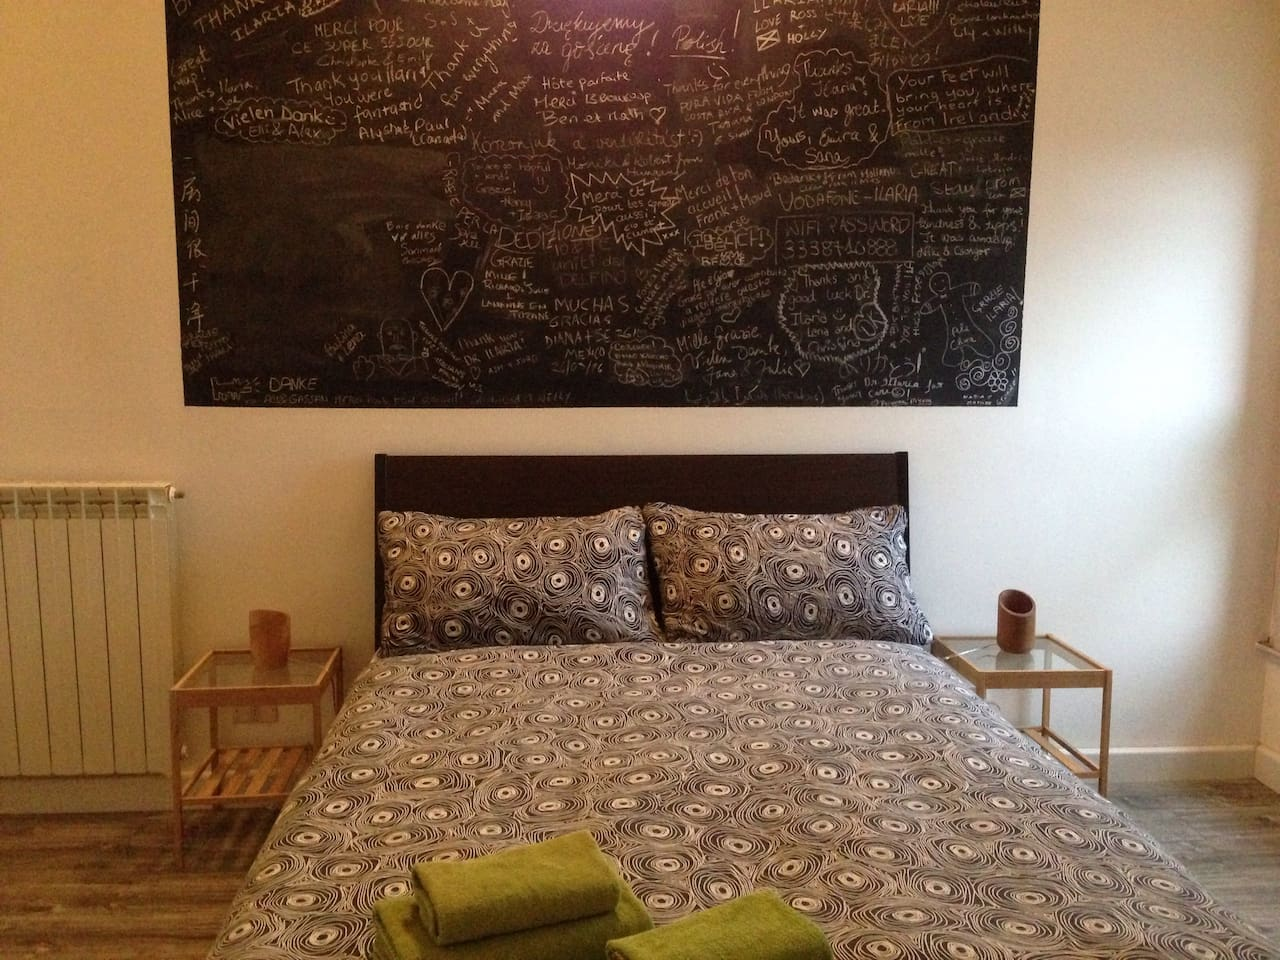 Doble room with french bed. Letto francese.